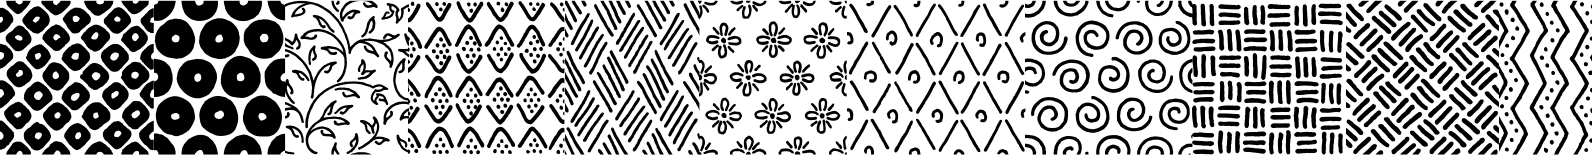 Melany Lane Patterns Font